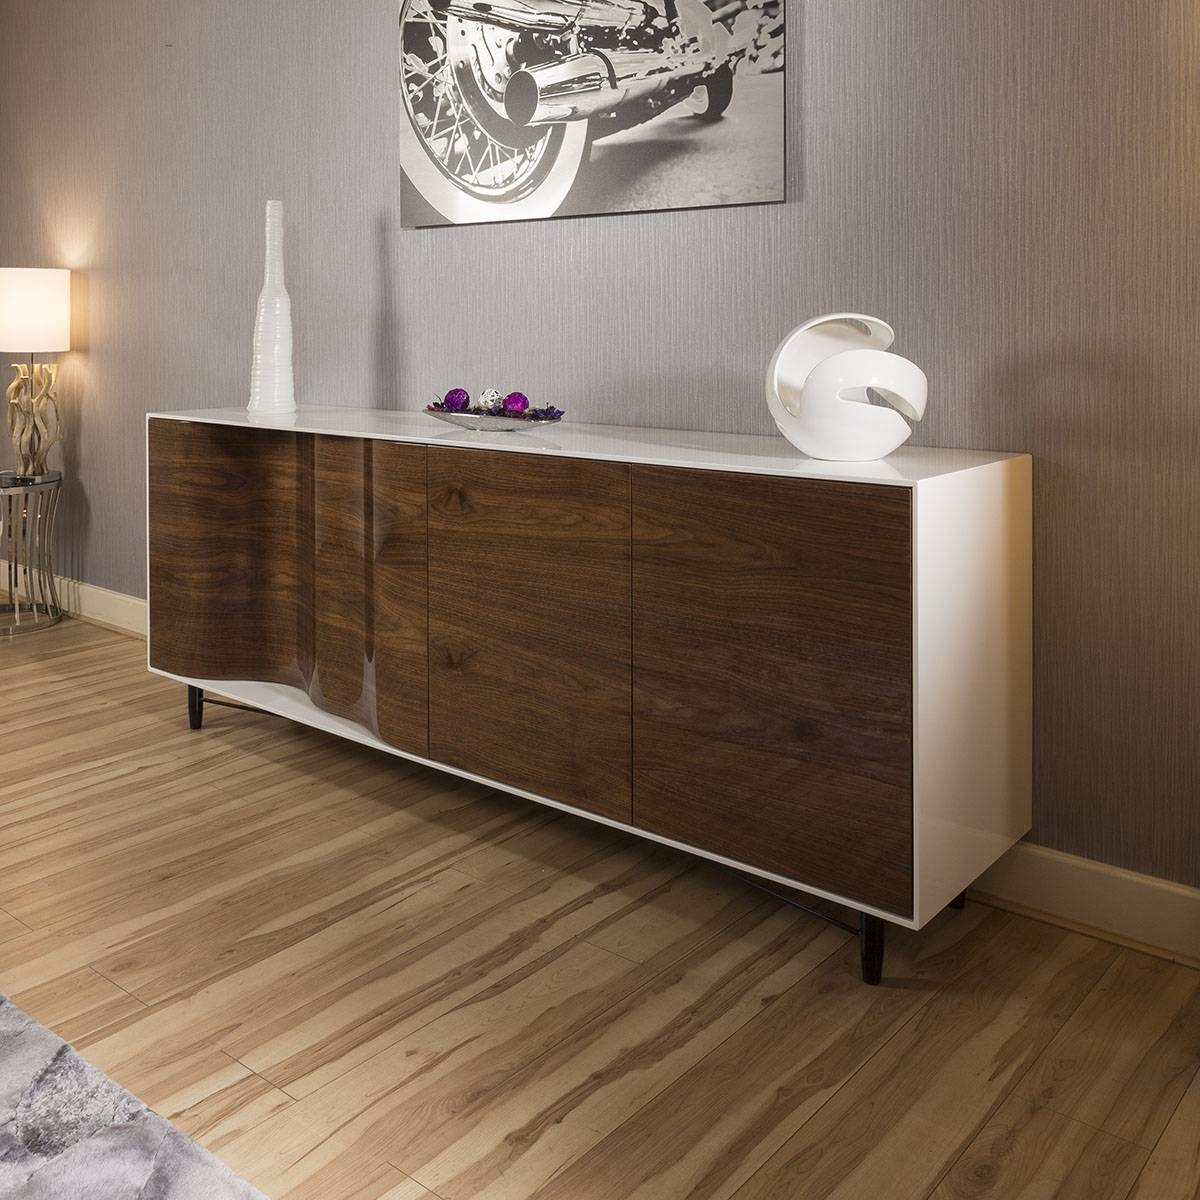 20 best ideas of large modern sideboard. Black Bedroom Furniture Sets. Home Design Ideas